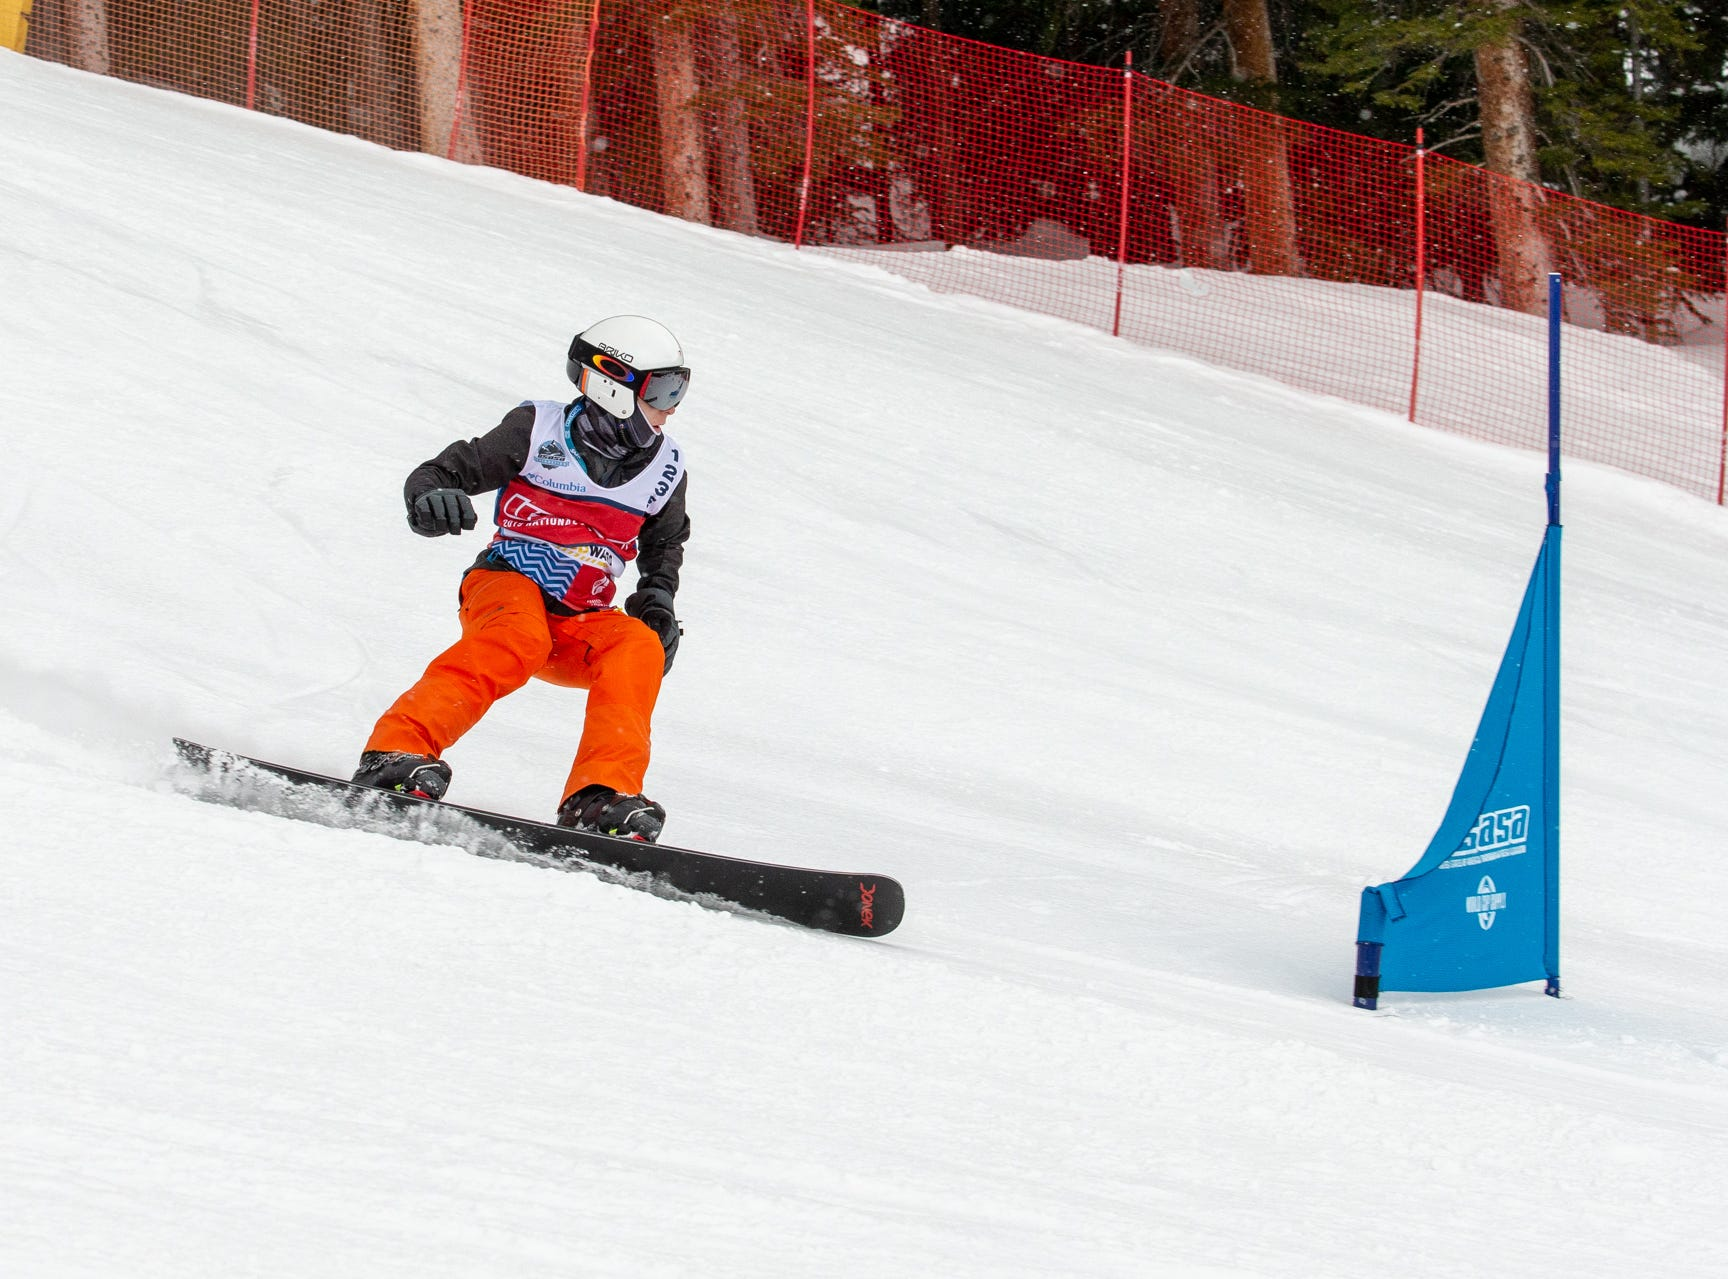 Thomas Lutz of Shasta High / North State snowboarders compete at the 2019 USASA National Championships at Copper Mountain in Colorado.